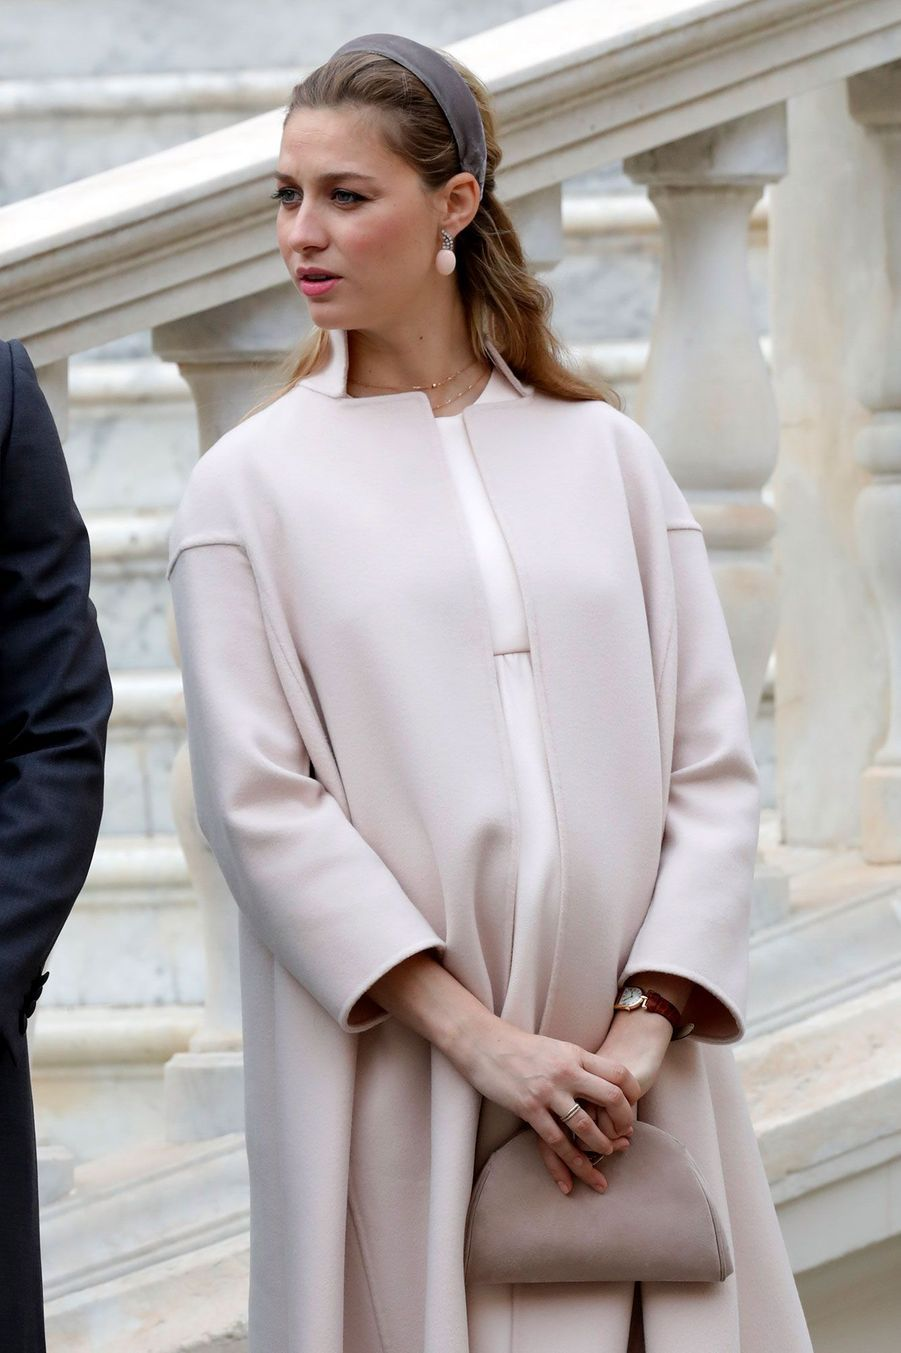 Beatrice Casiraghi